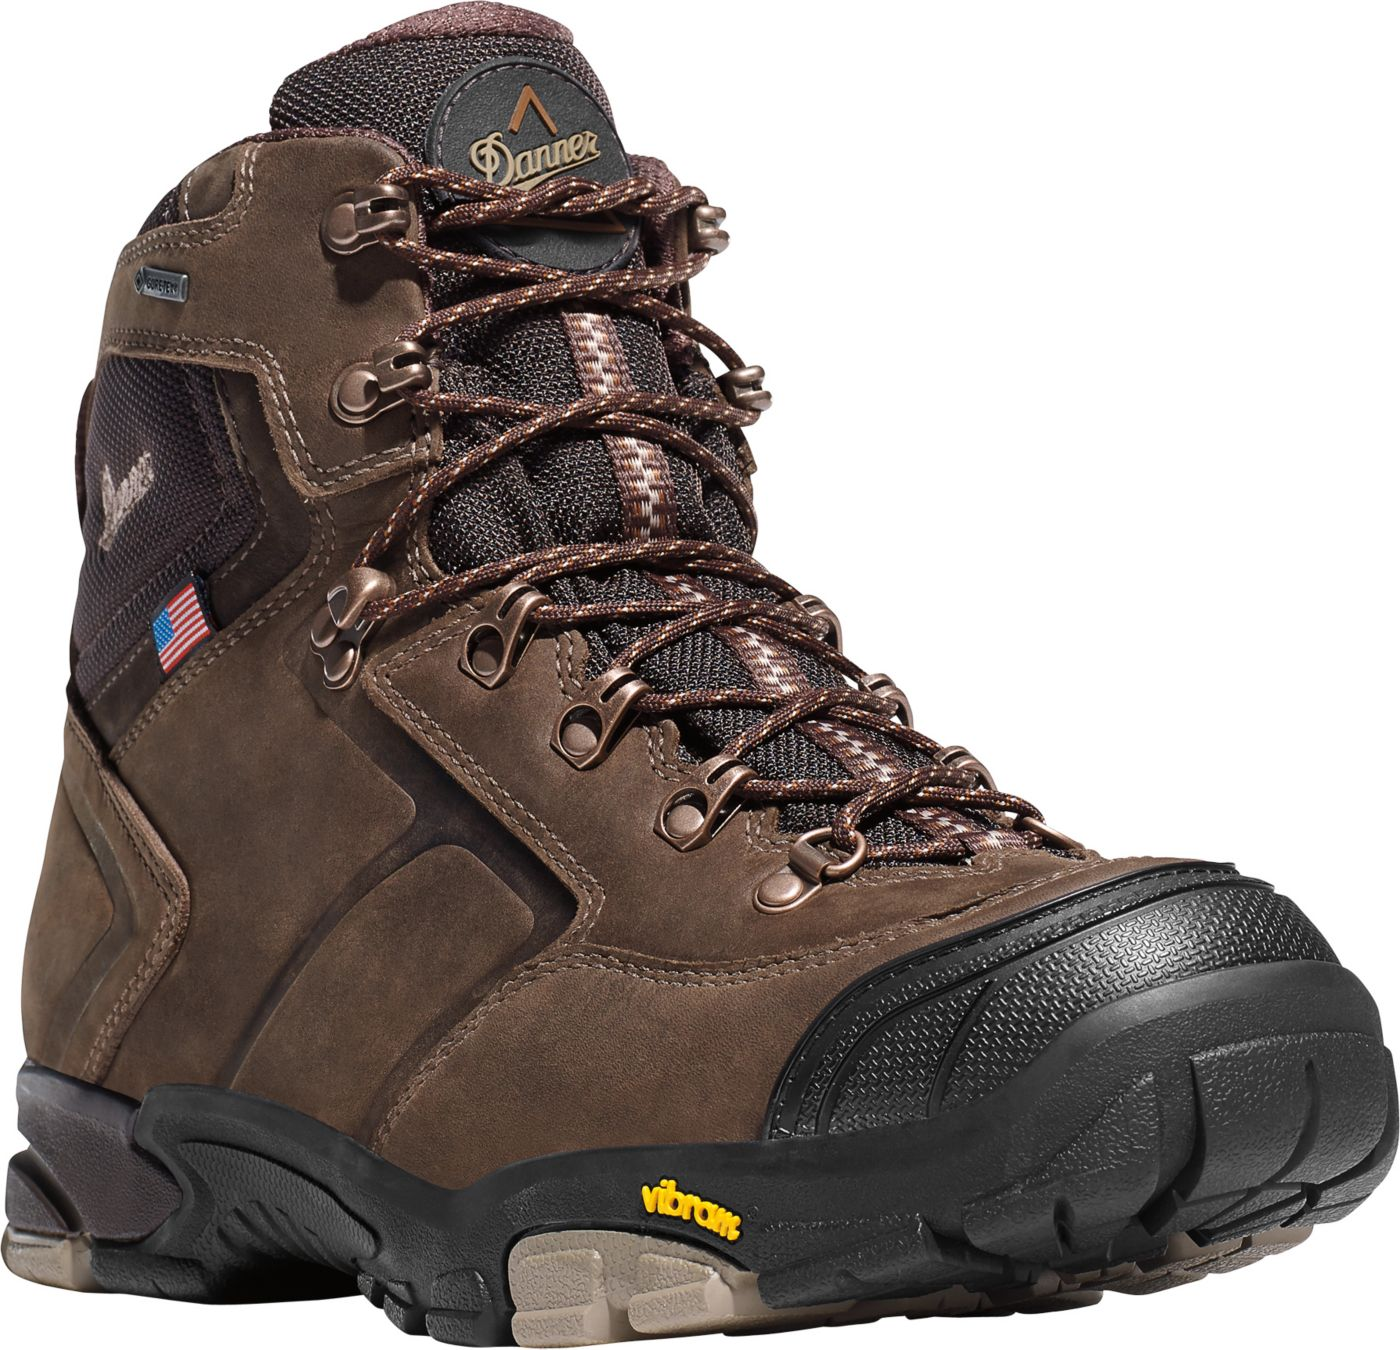 Danner Men's Mt. Adams GORE-TEX Hiking Boots